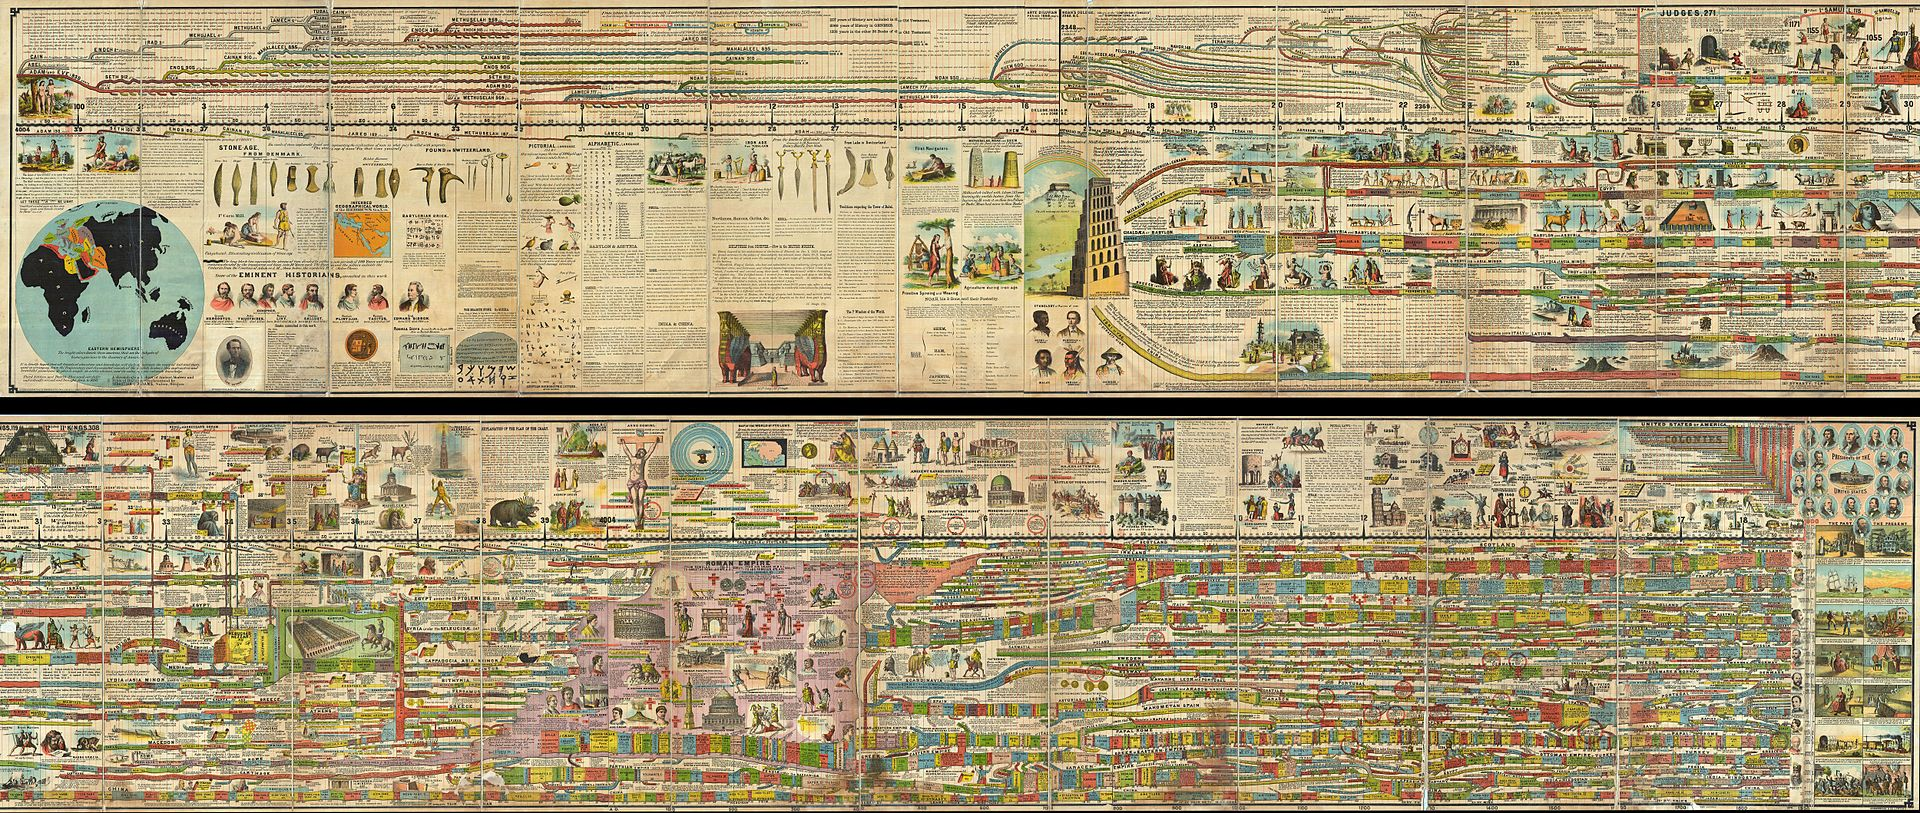 1878_Adams_Monumental_Illustrated_Panorama_of_History_-_Geographicus_-_WorldHistory-adams-1871